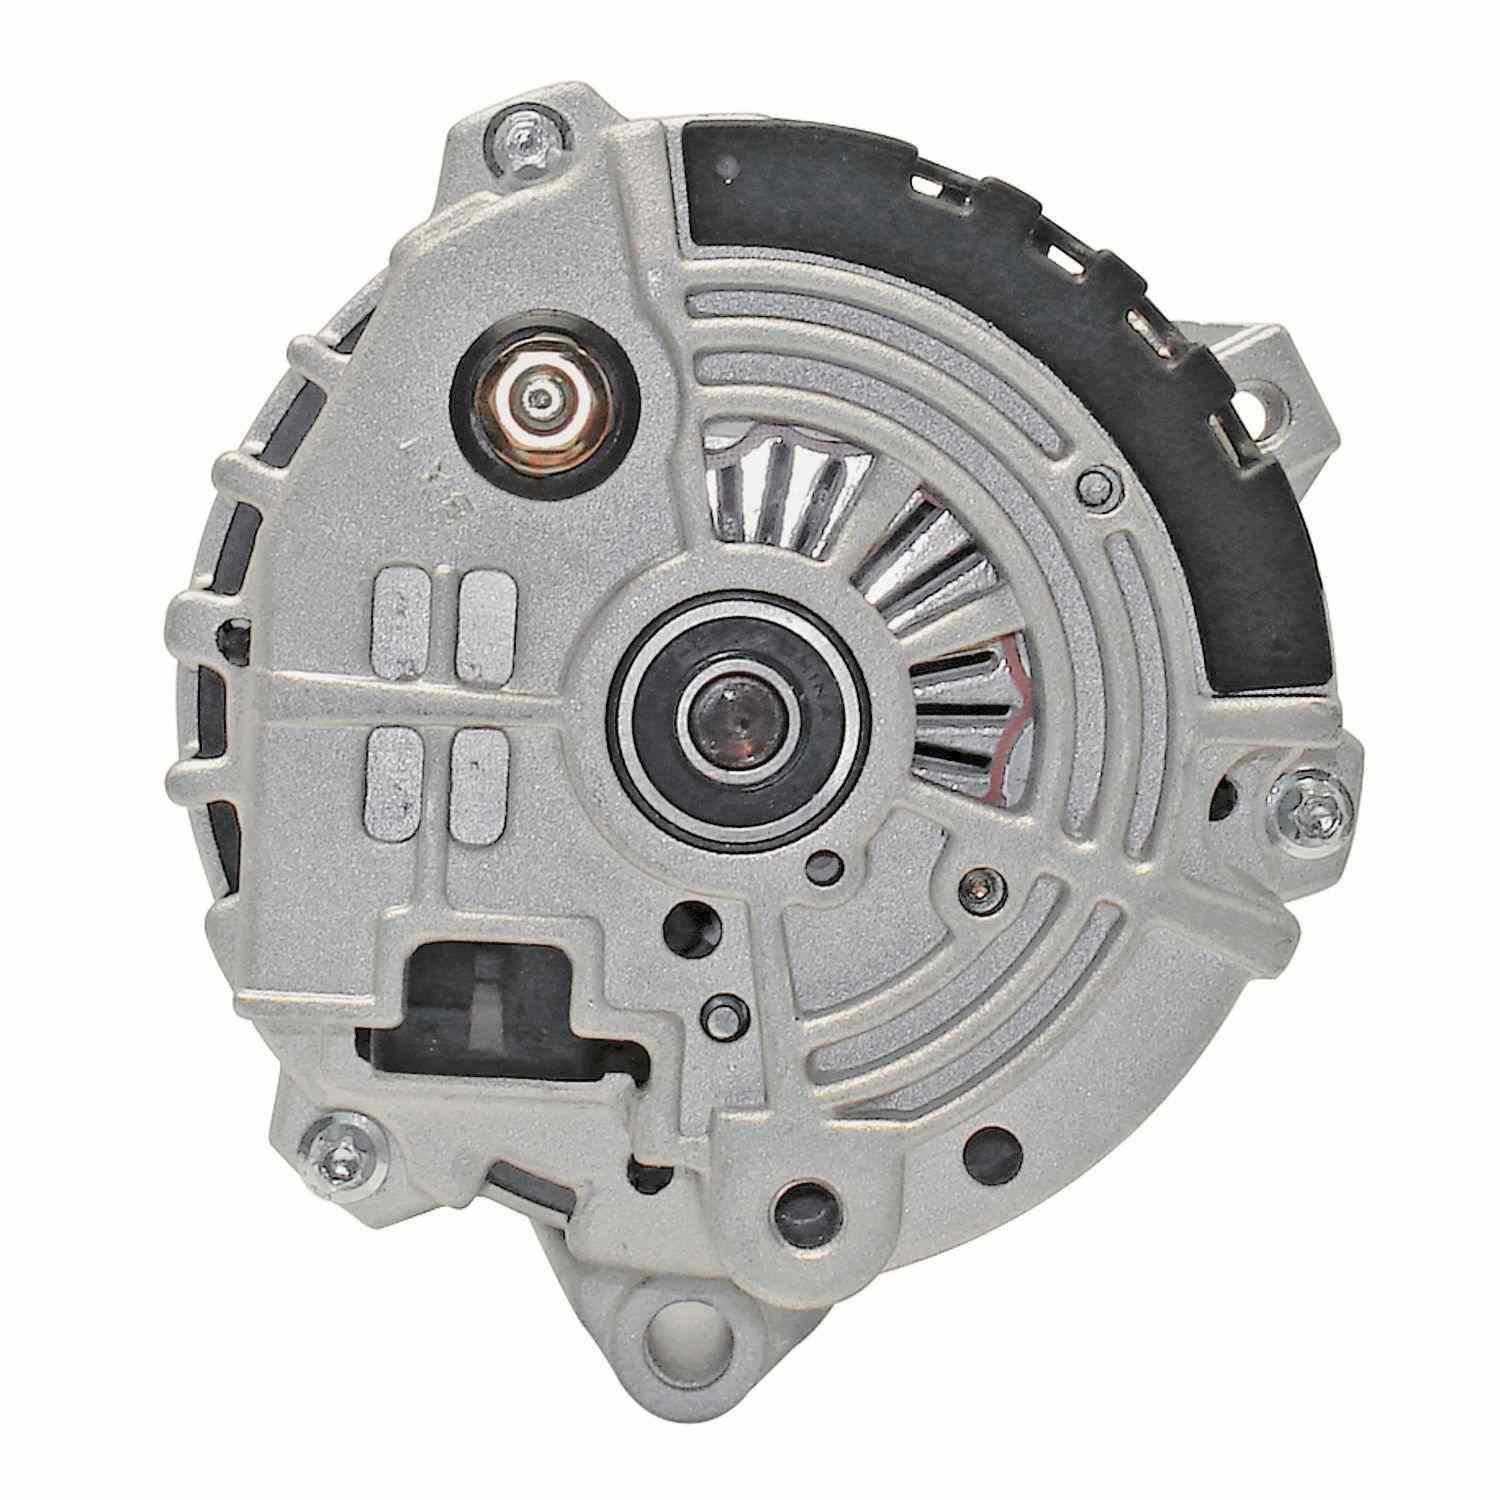 ACDELCO GOLD/PROFESSIONAL - Reman Alternator - DCC 334-2365A